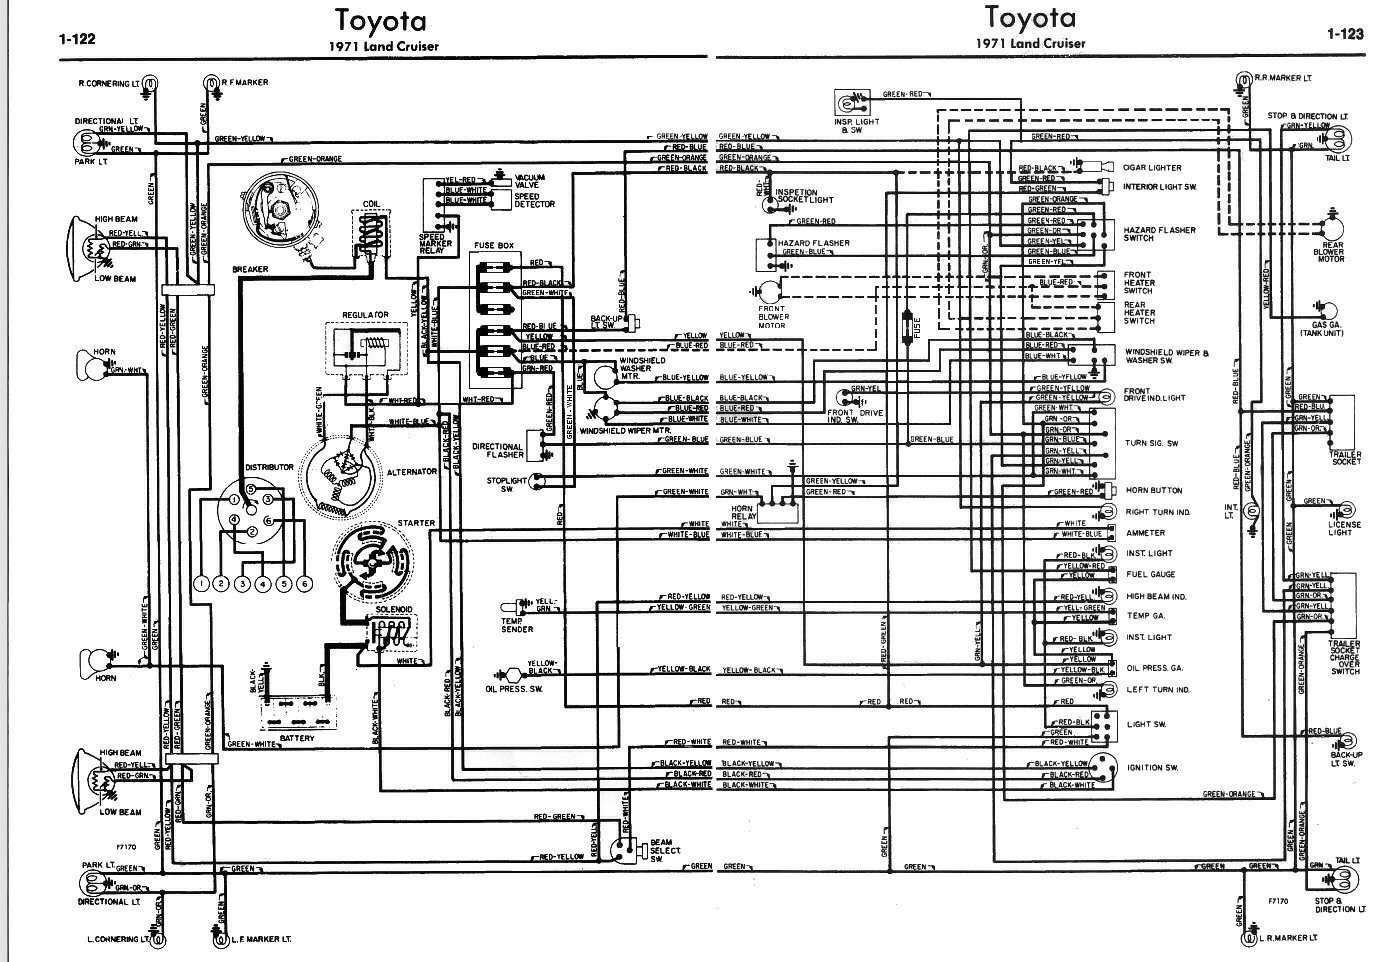 Fj40 Wiring Diagram Painless Opinions About Whirlpool Dryer Model Wgd4800bq Centech Harness 27 Images Diagrams Readyjetset Co 1973